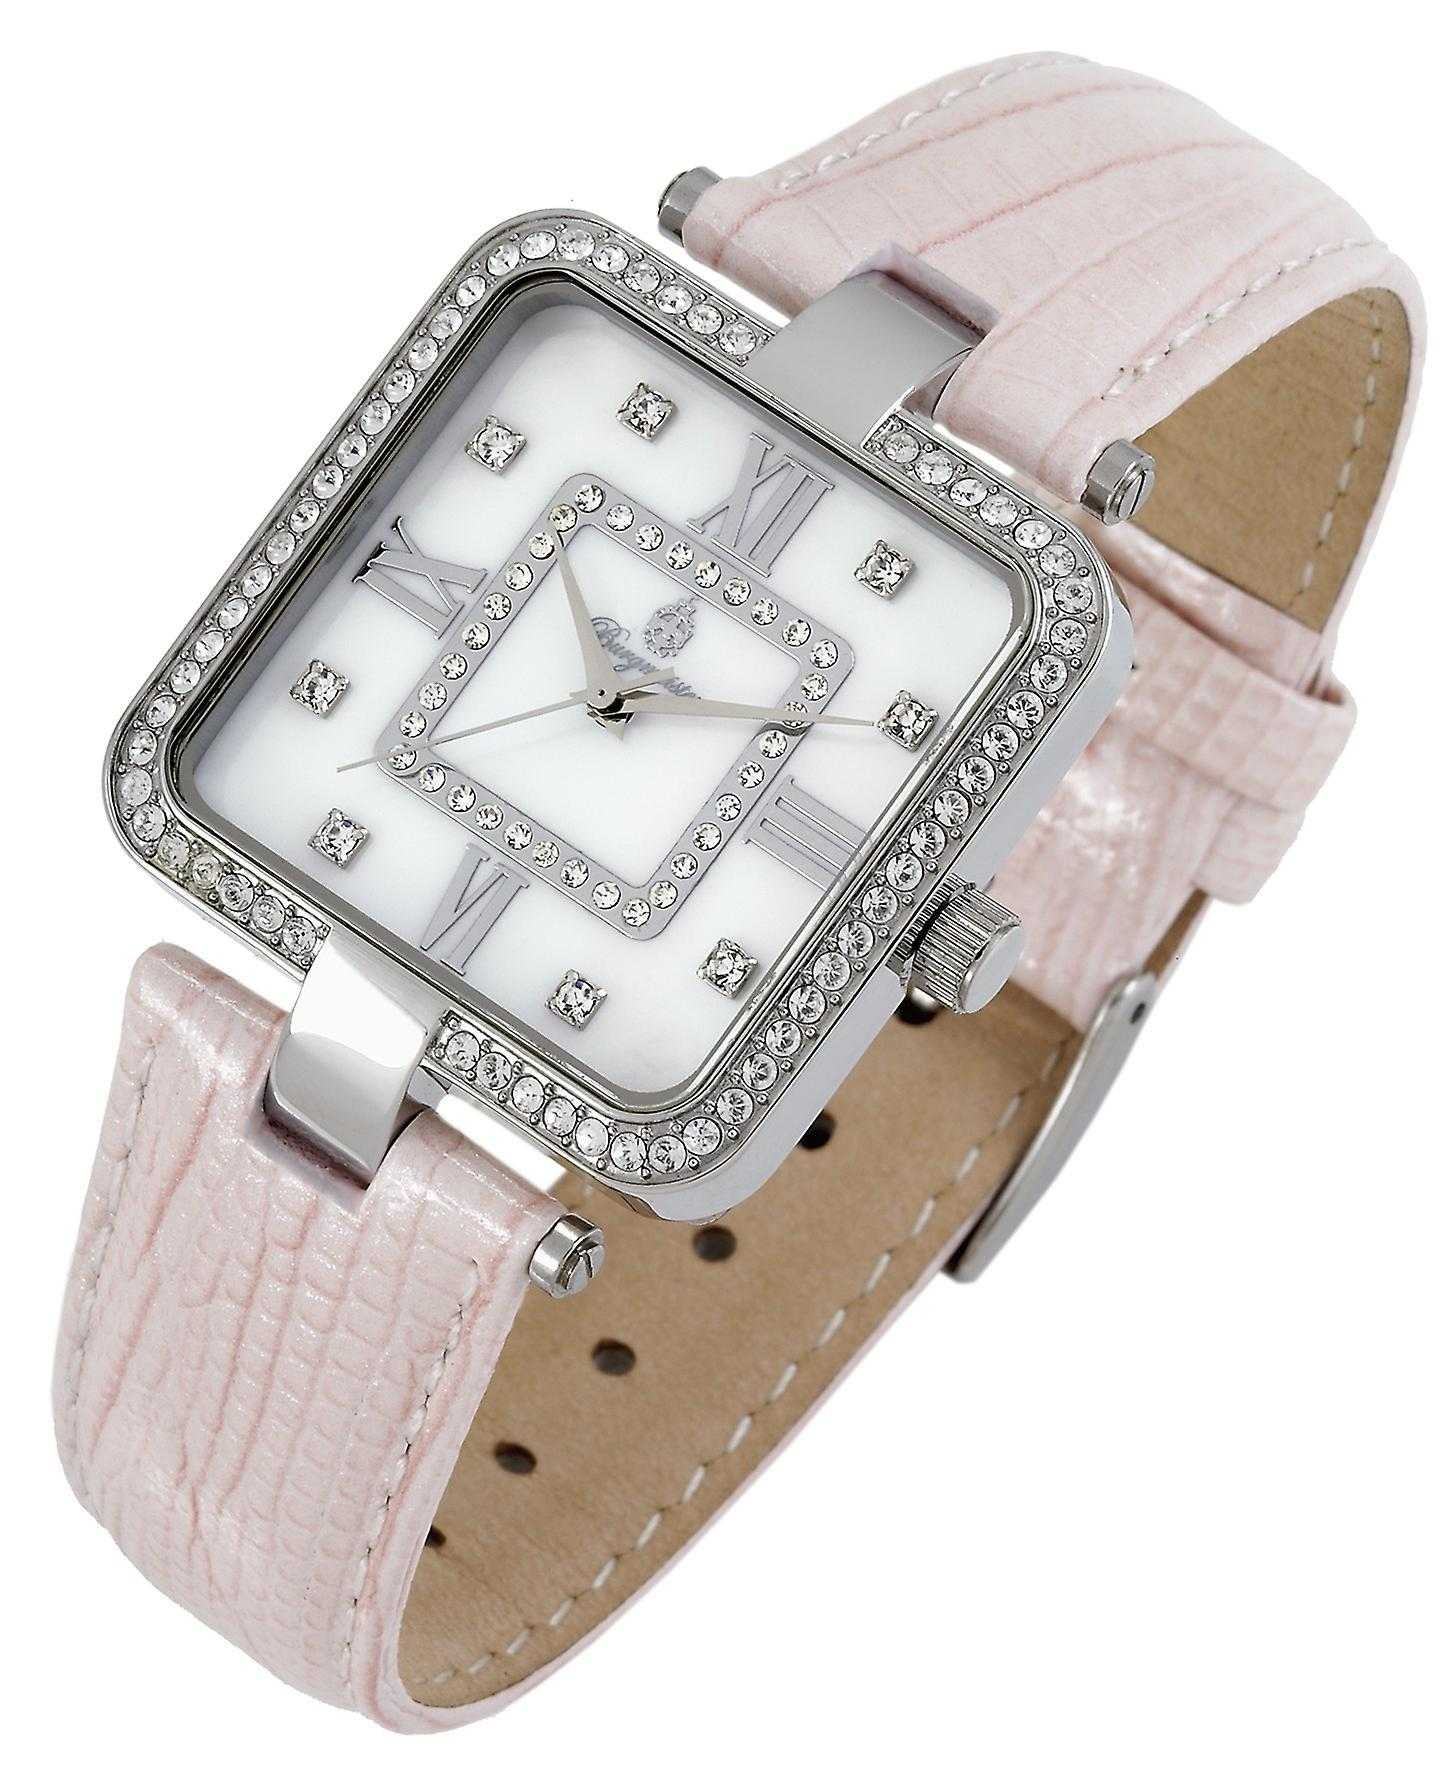 Burgmeister ladies quartz watch Accra BM515-188